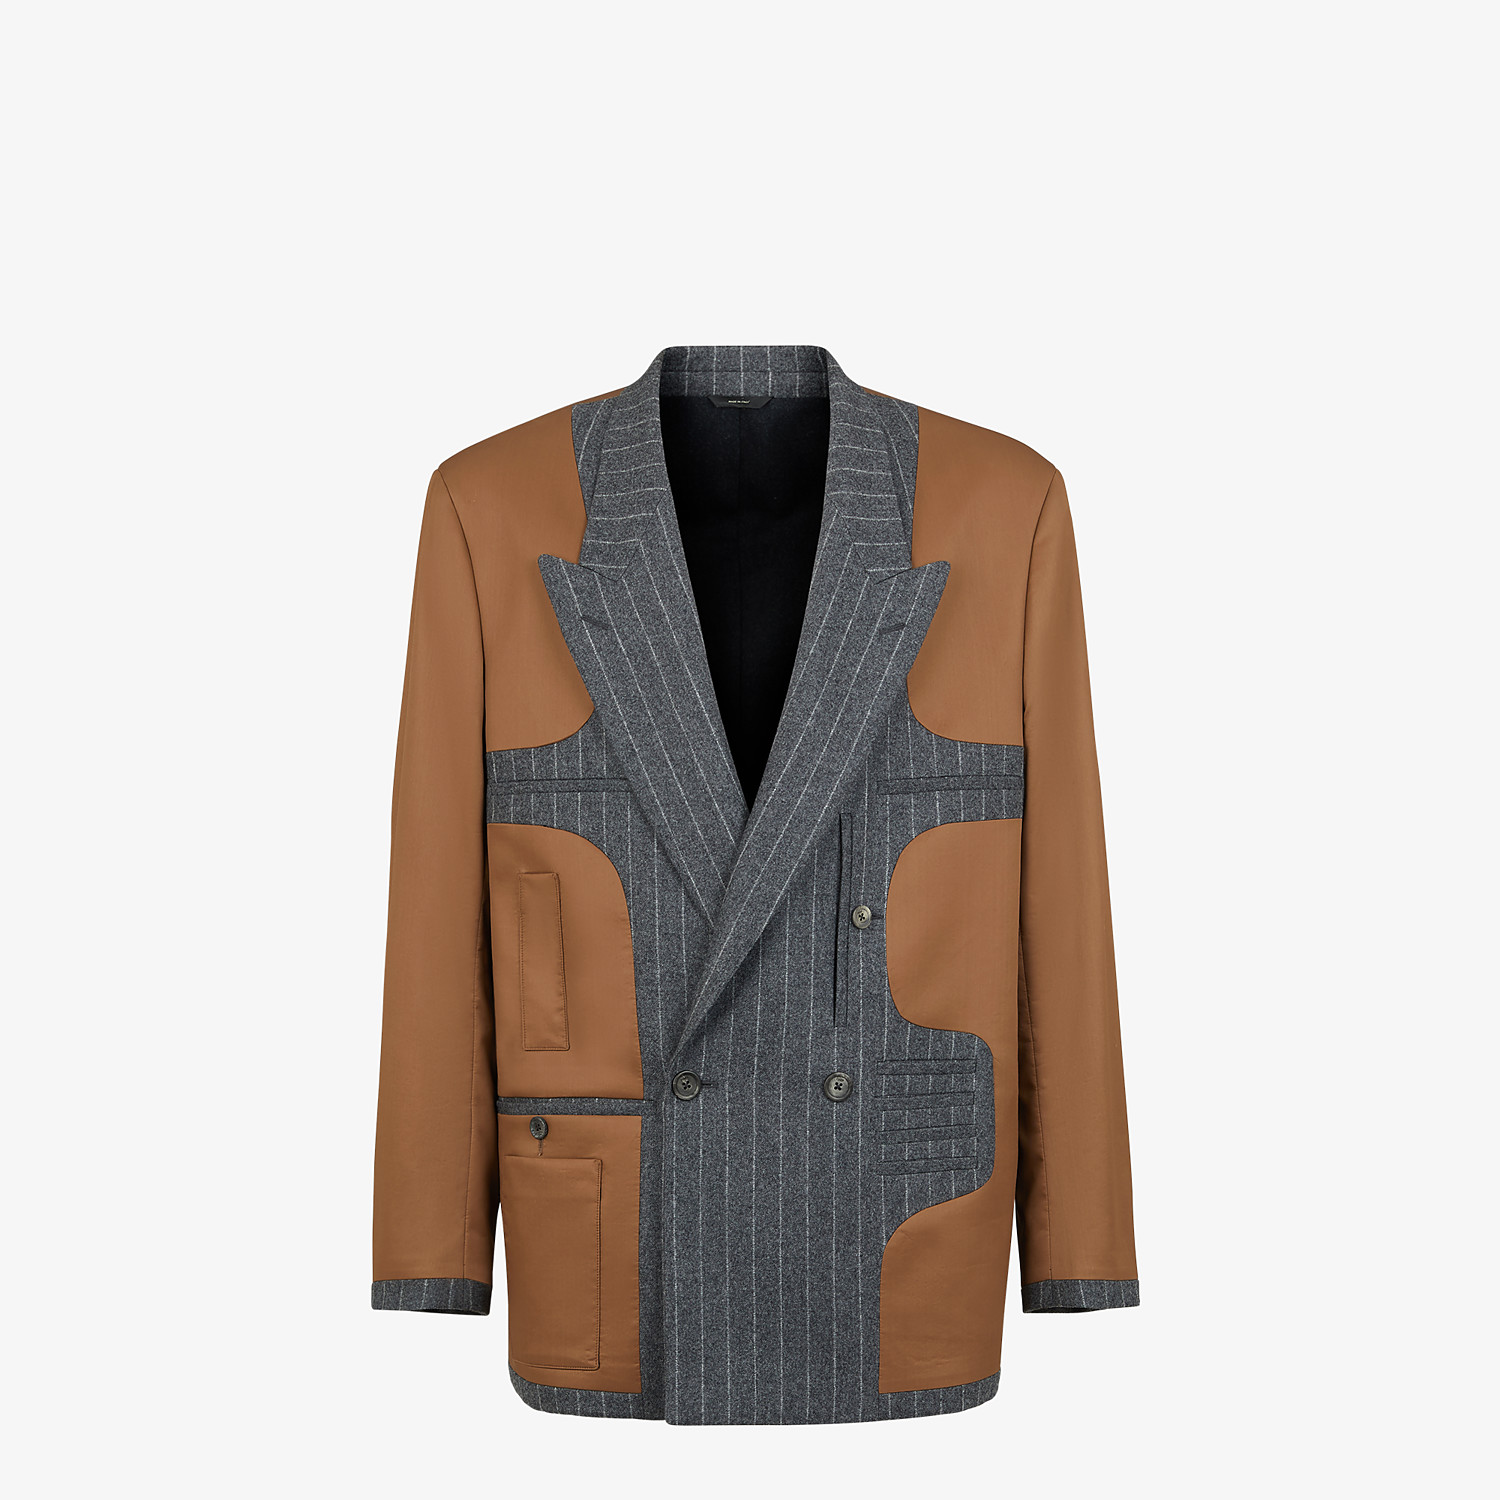 FENDI JACKET - Multicolor silk and wool blazer - view 1 detail